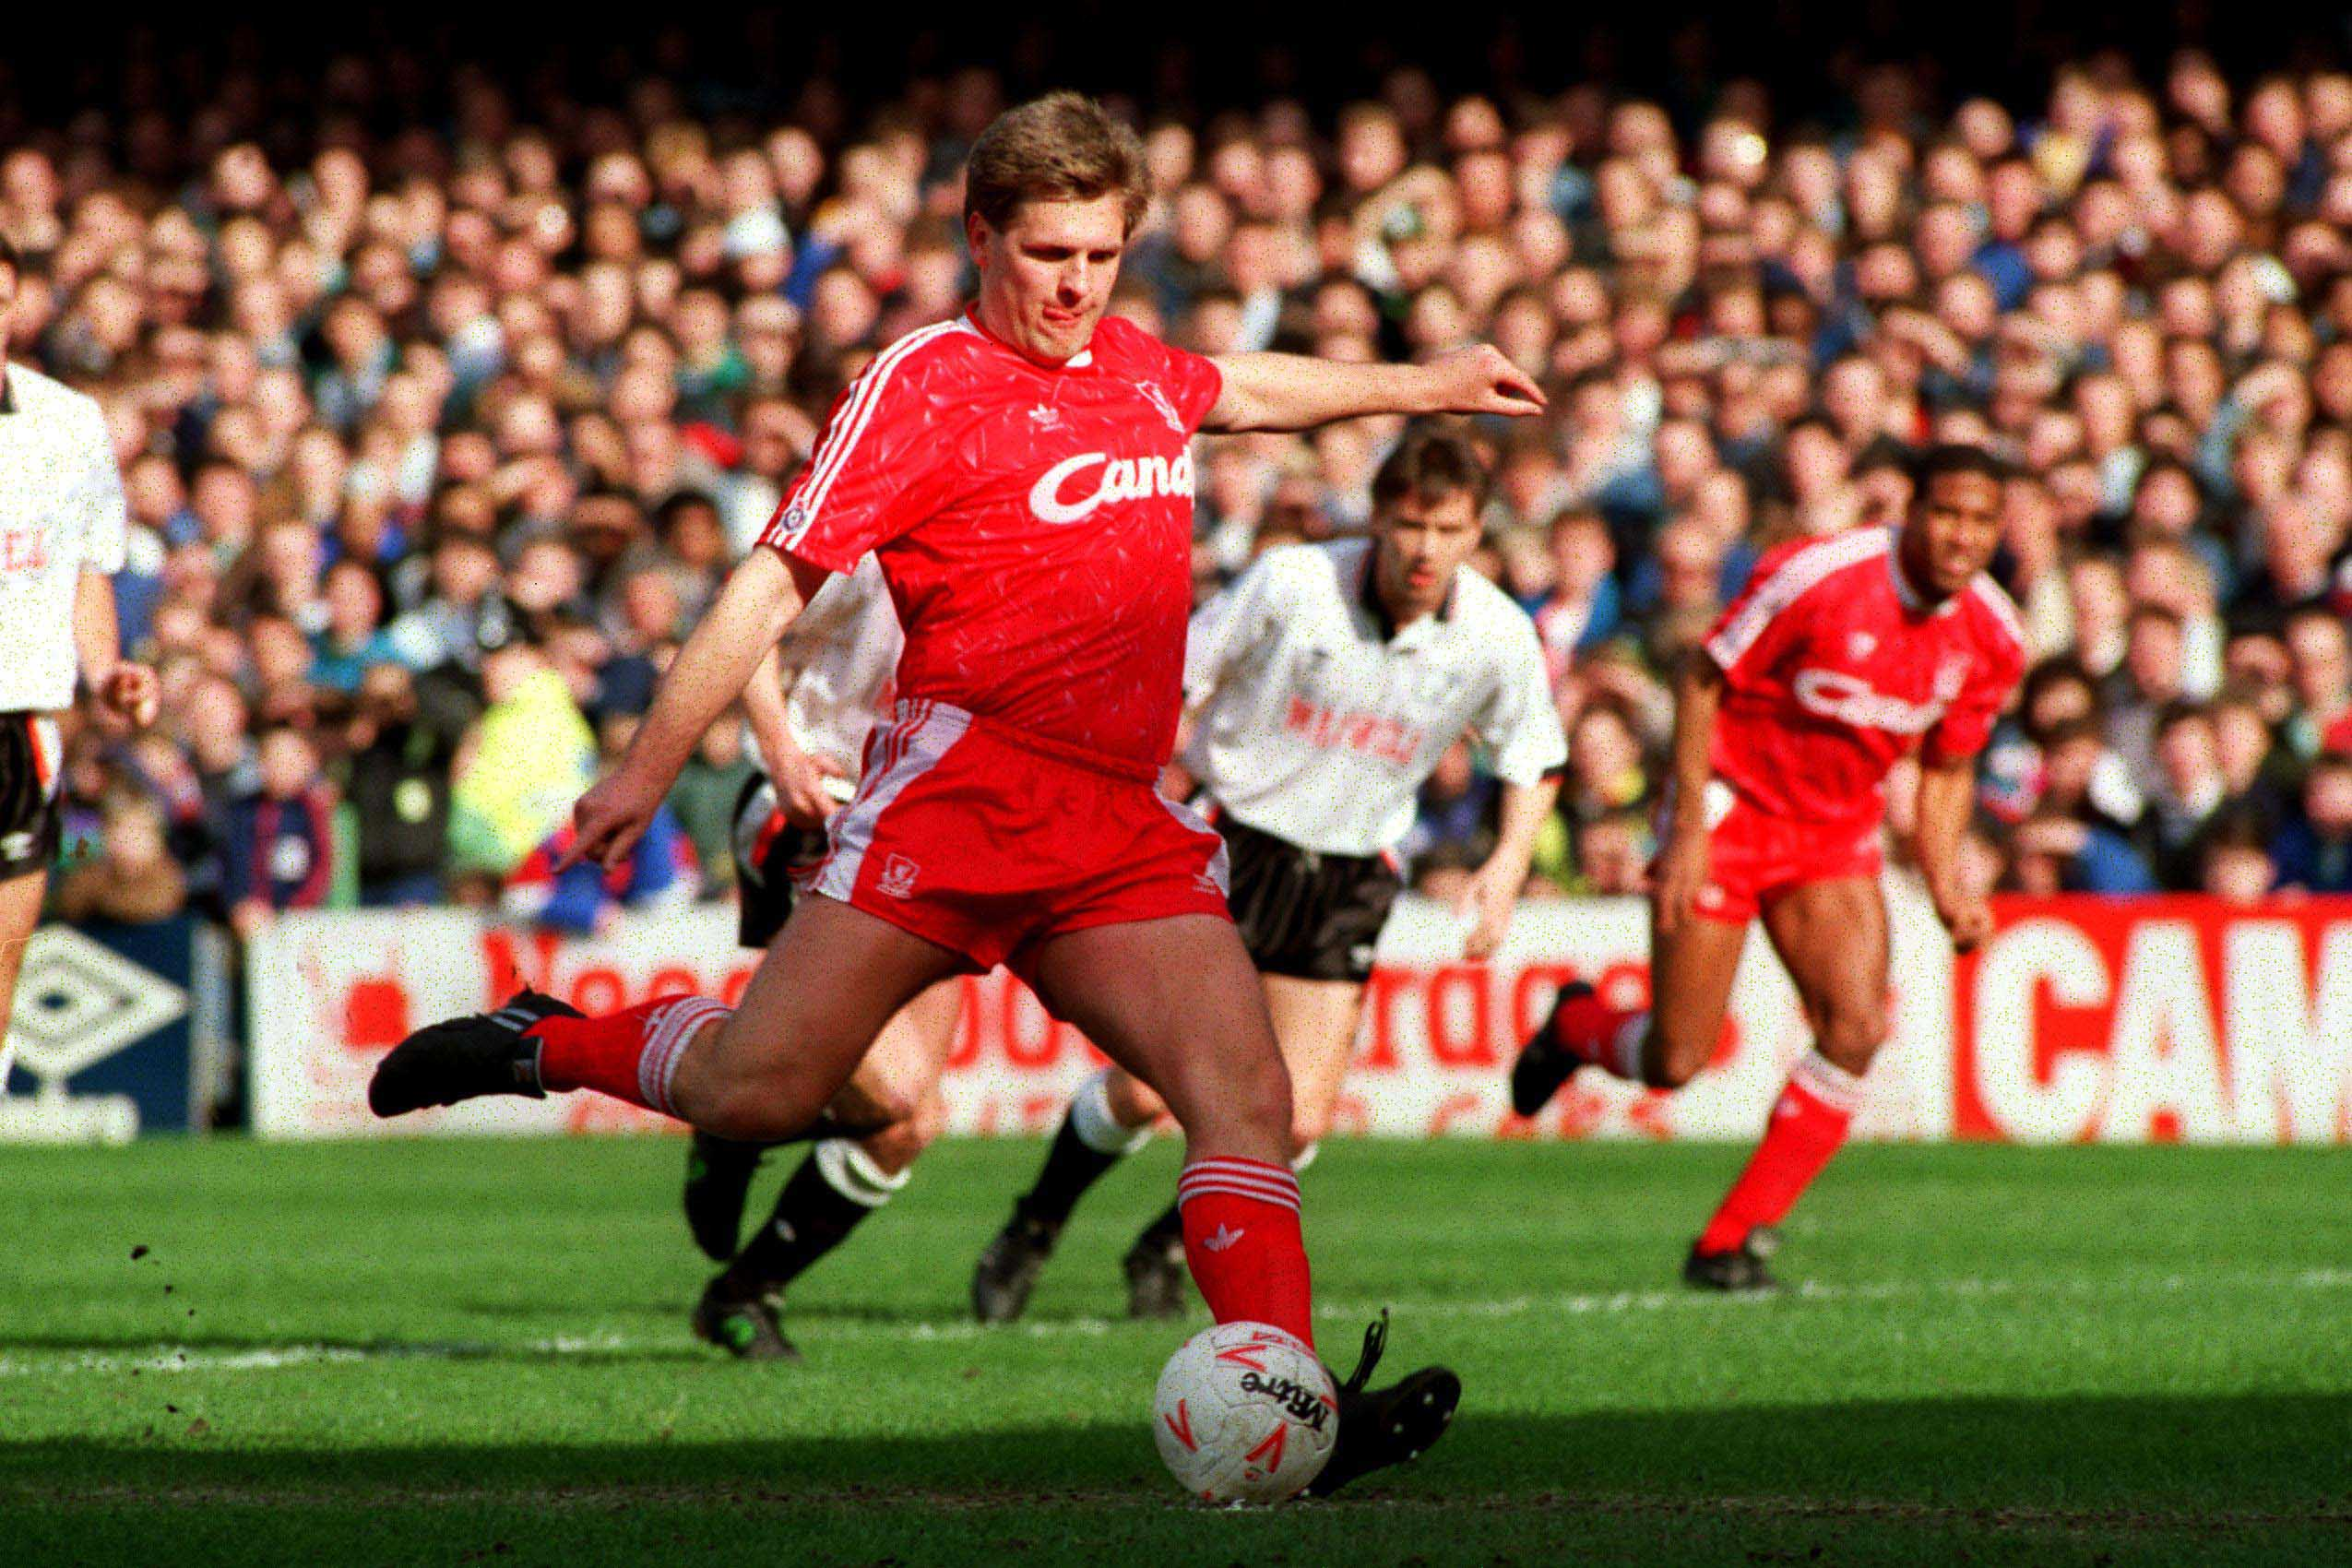 REVIEW: MEN IN WHITE SUITS – LIVERPOOL FC IN THE 1990s